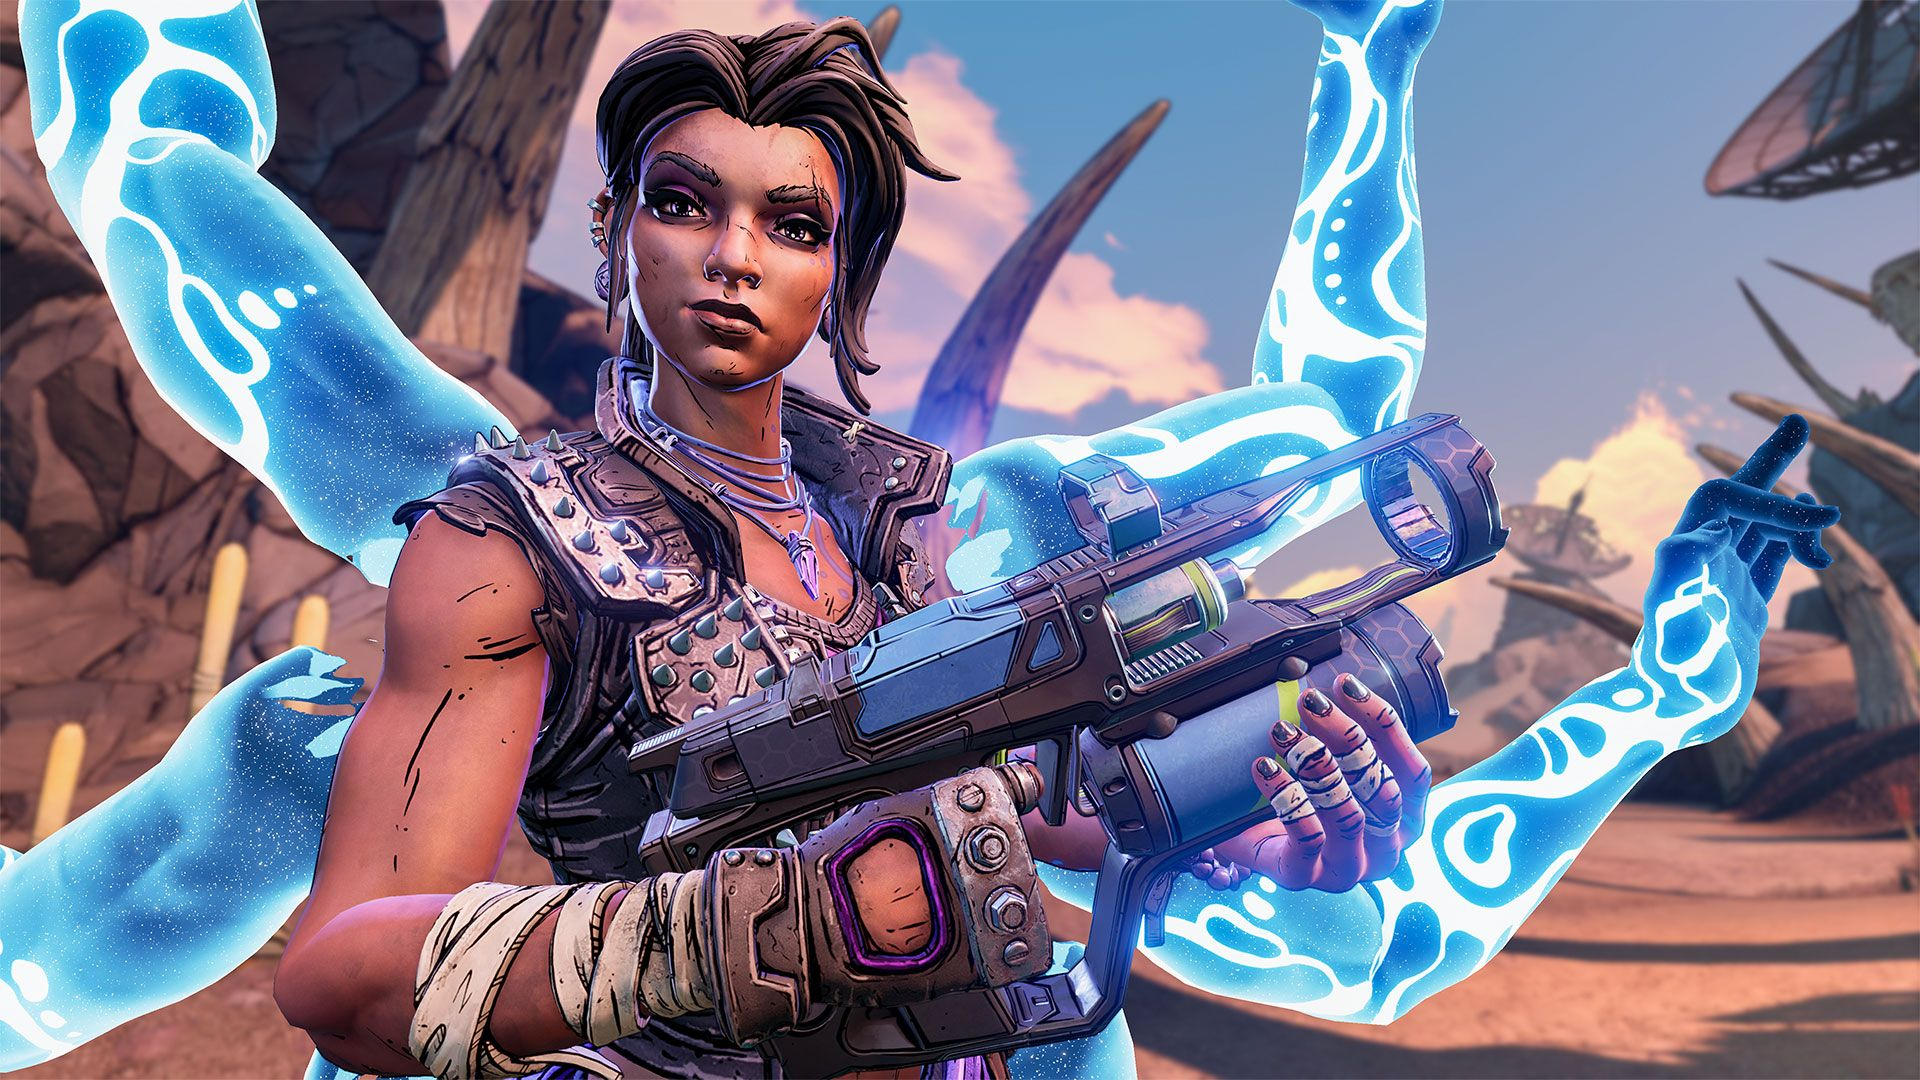 Borderlands 3 Complete Character Guide – All Classes, Skills and Best Builds